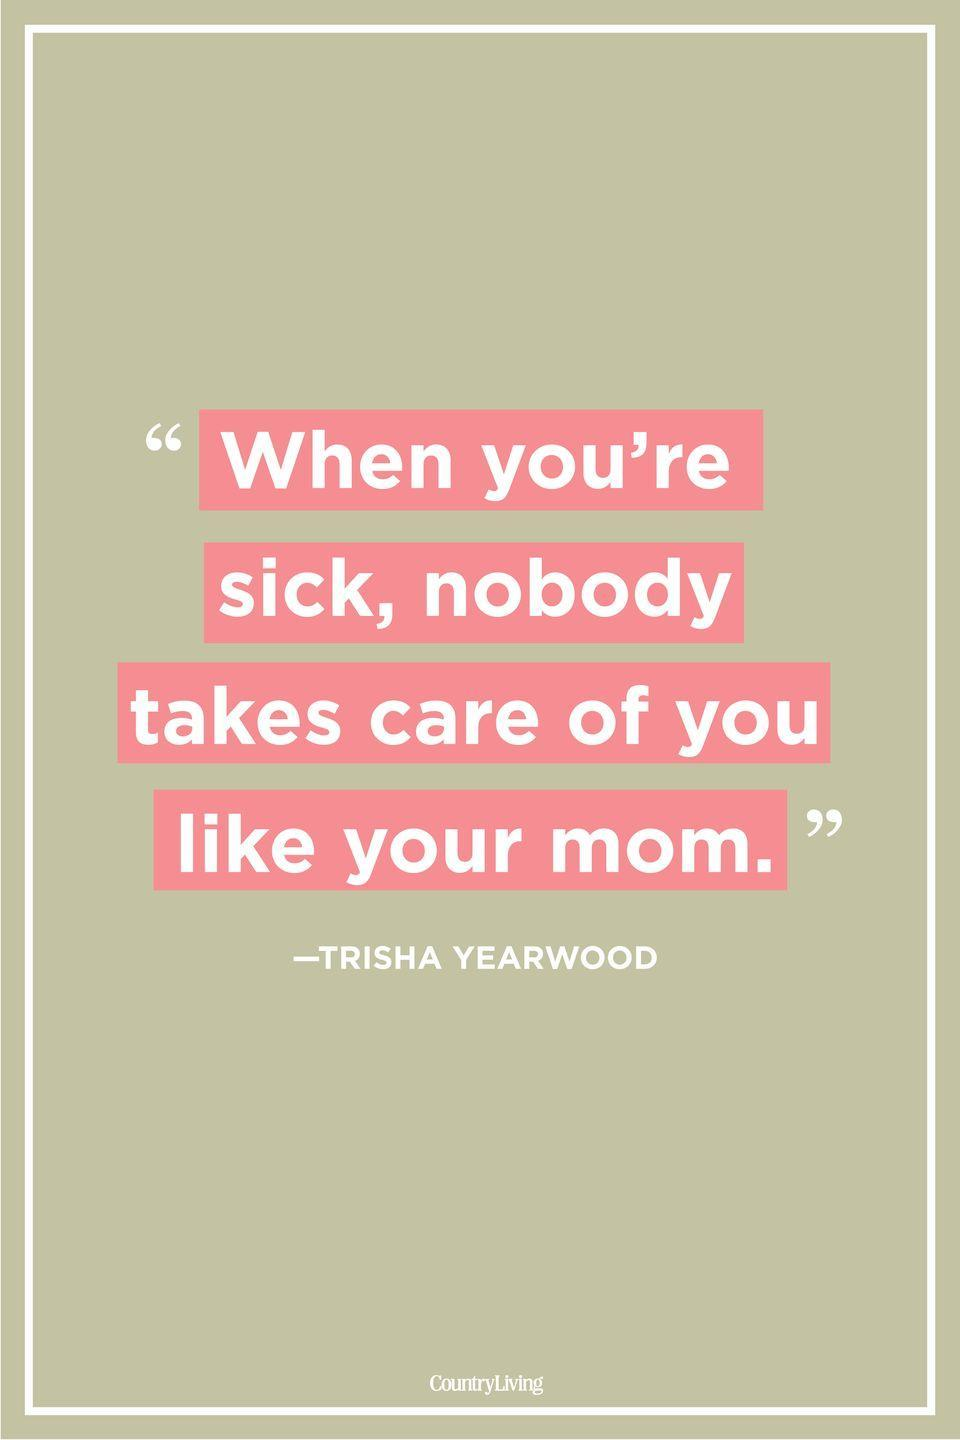 "<p>""When you're sick, nobody takes care of you like your mom.""</p>"